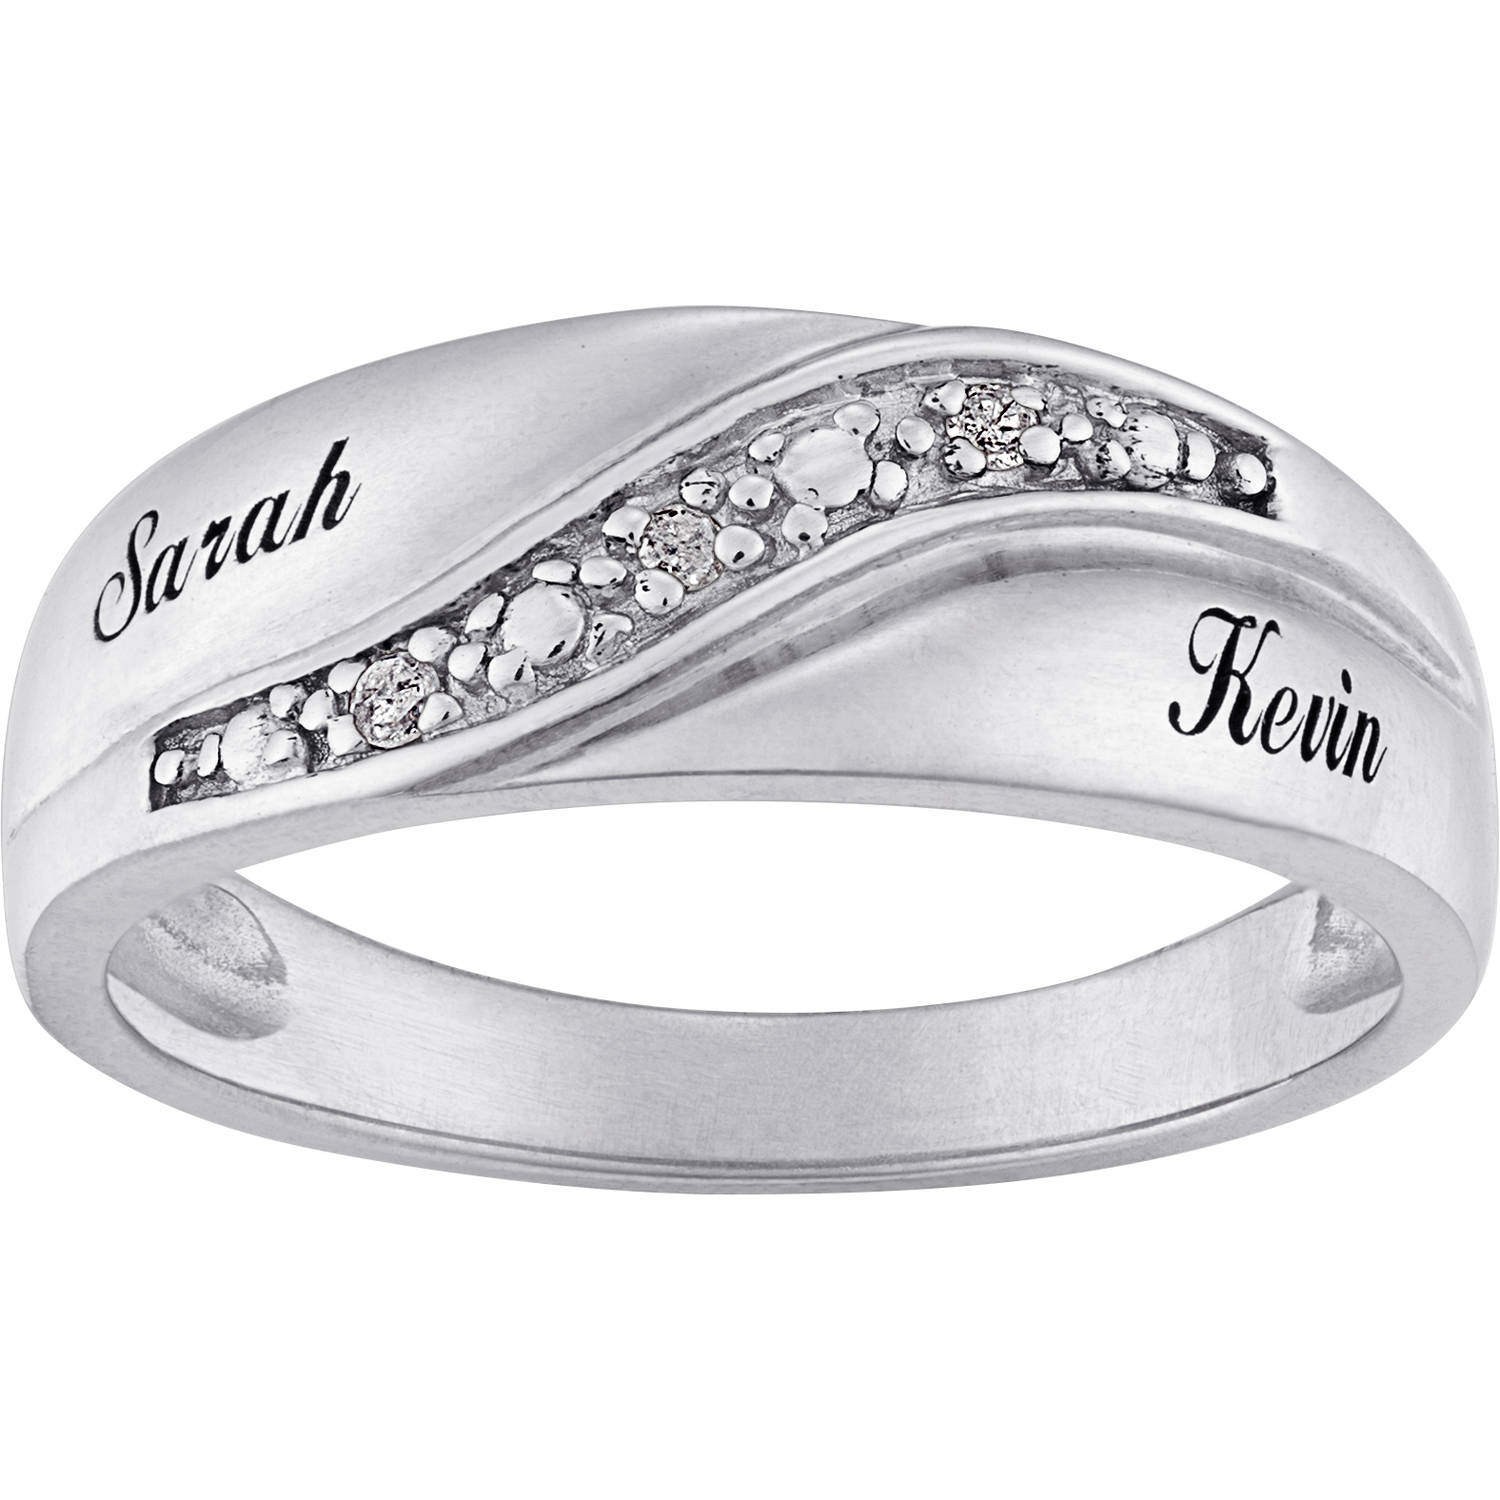 Etonnant Personalized Sterling Silver Mens Diamond Accent Name Wedding Band